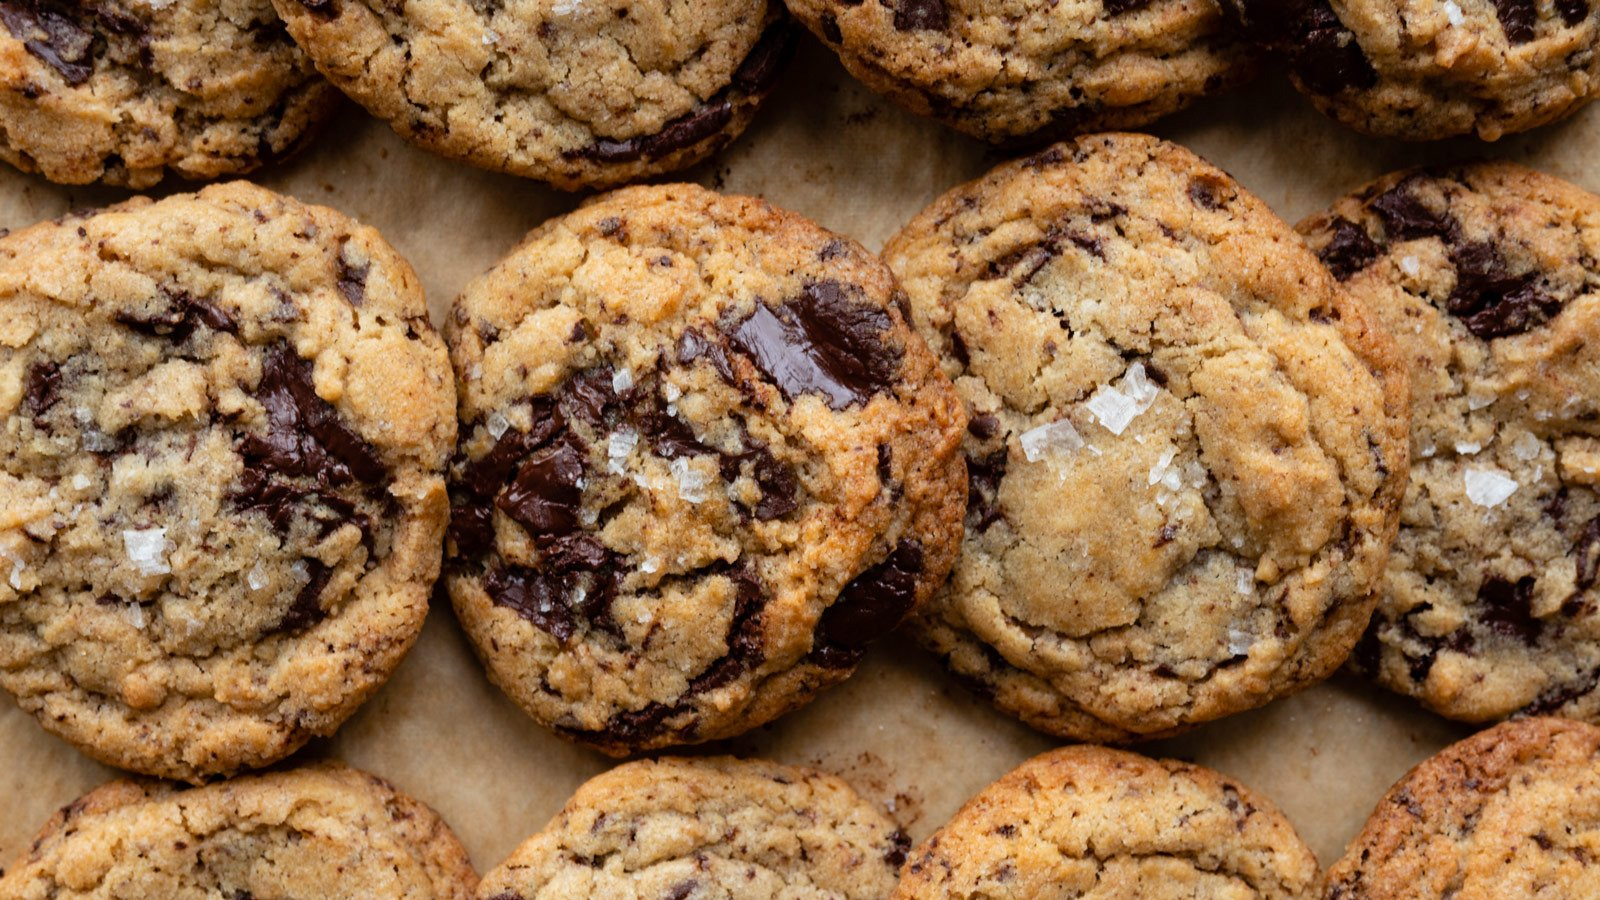 These Are The Best Chocolate Chip Cookies You've Ever Tasted